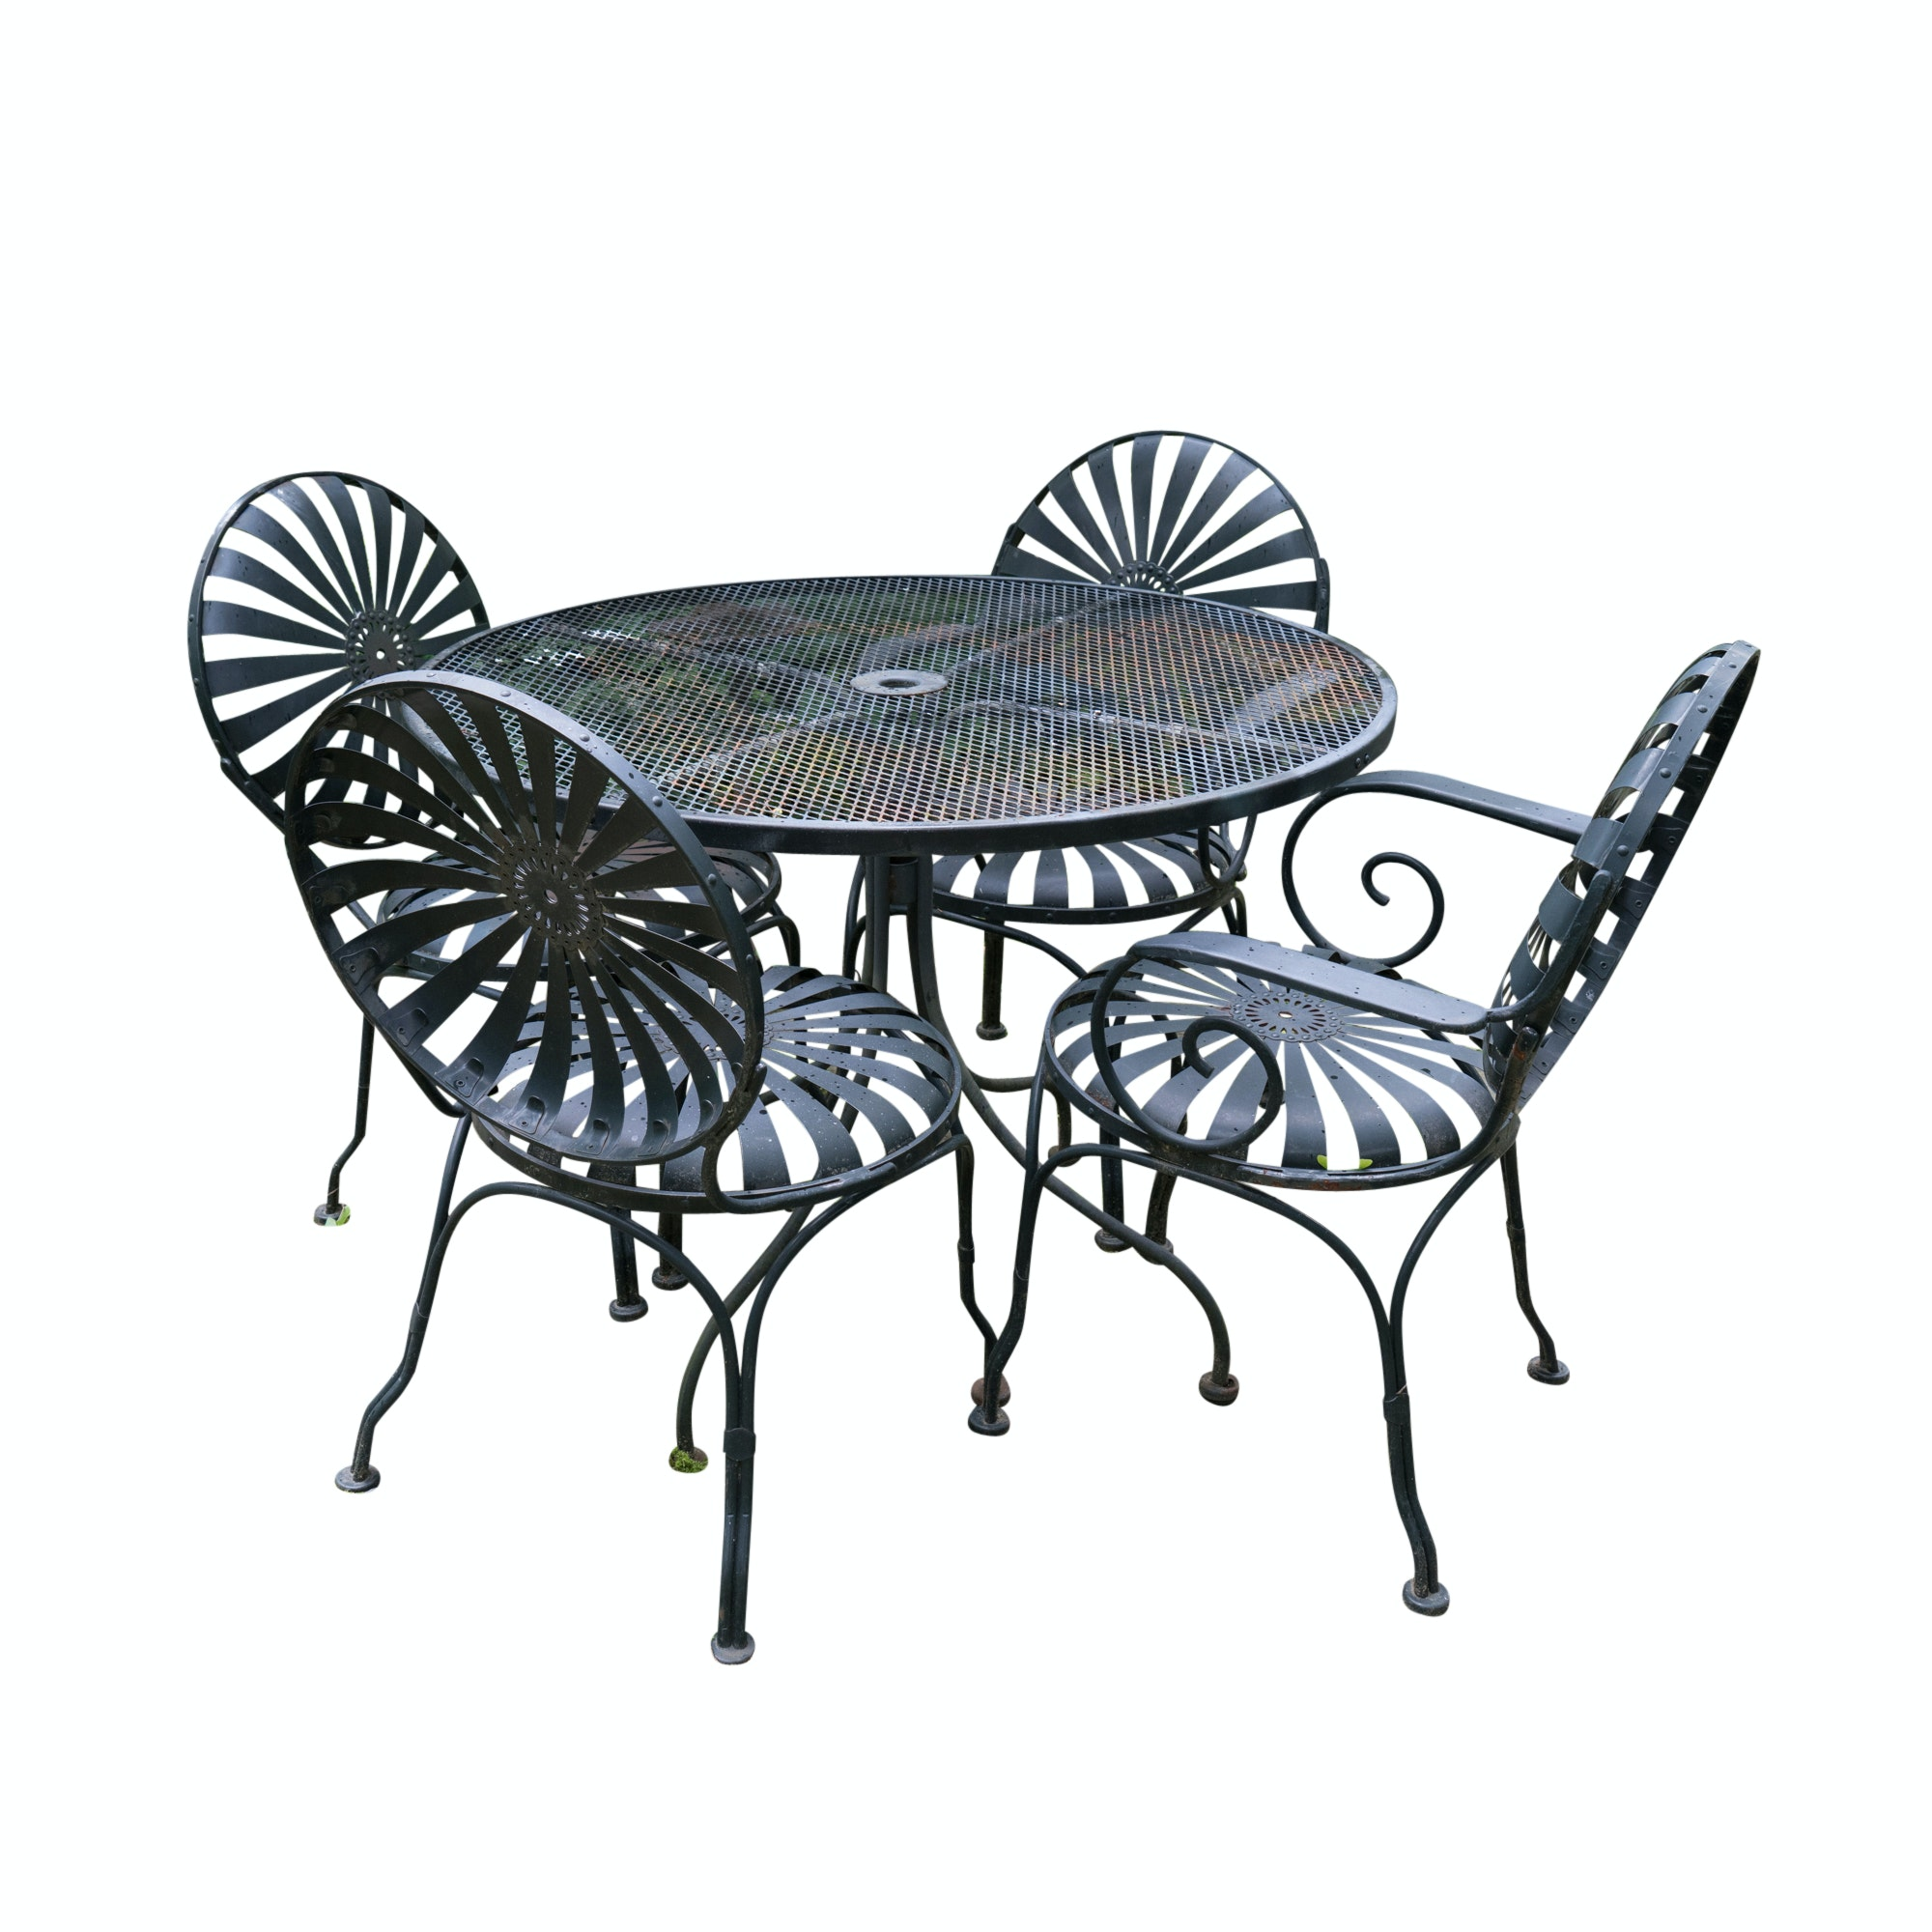 Patio Furniture Set with Four Chairs, One Bench, and One Table